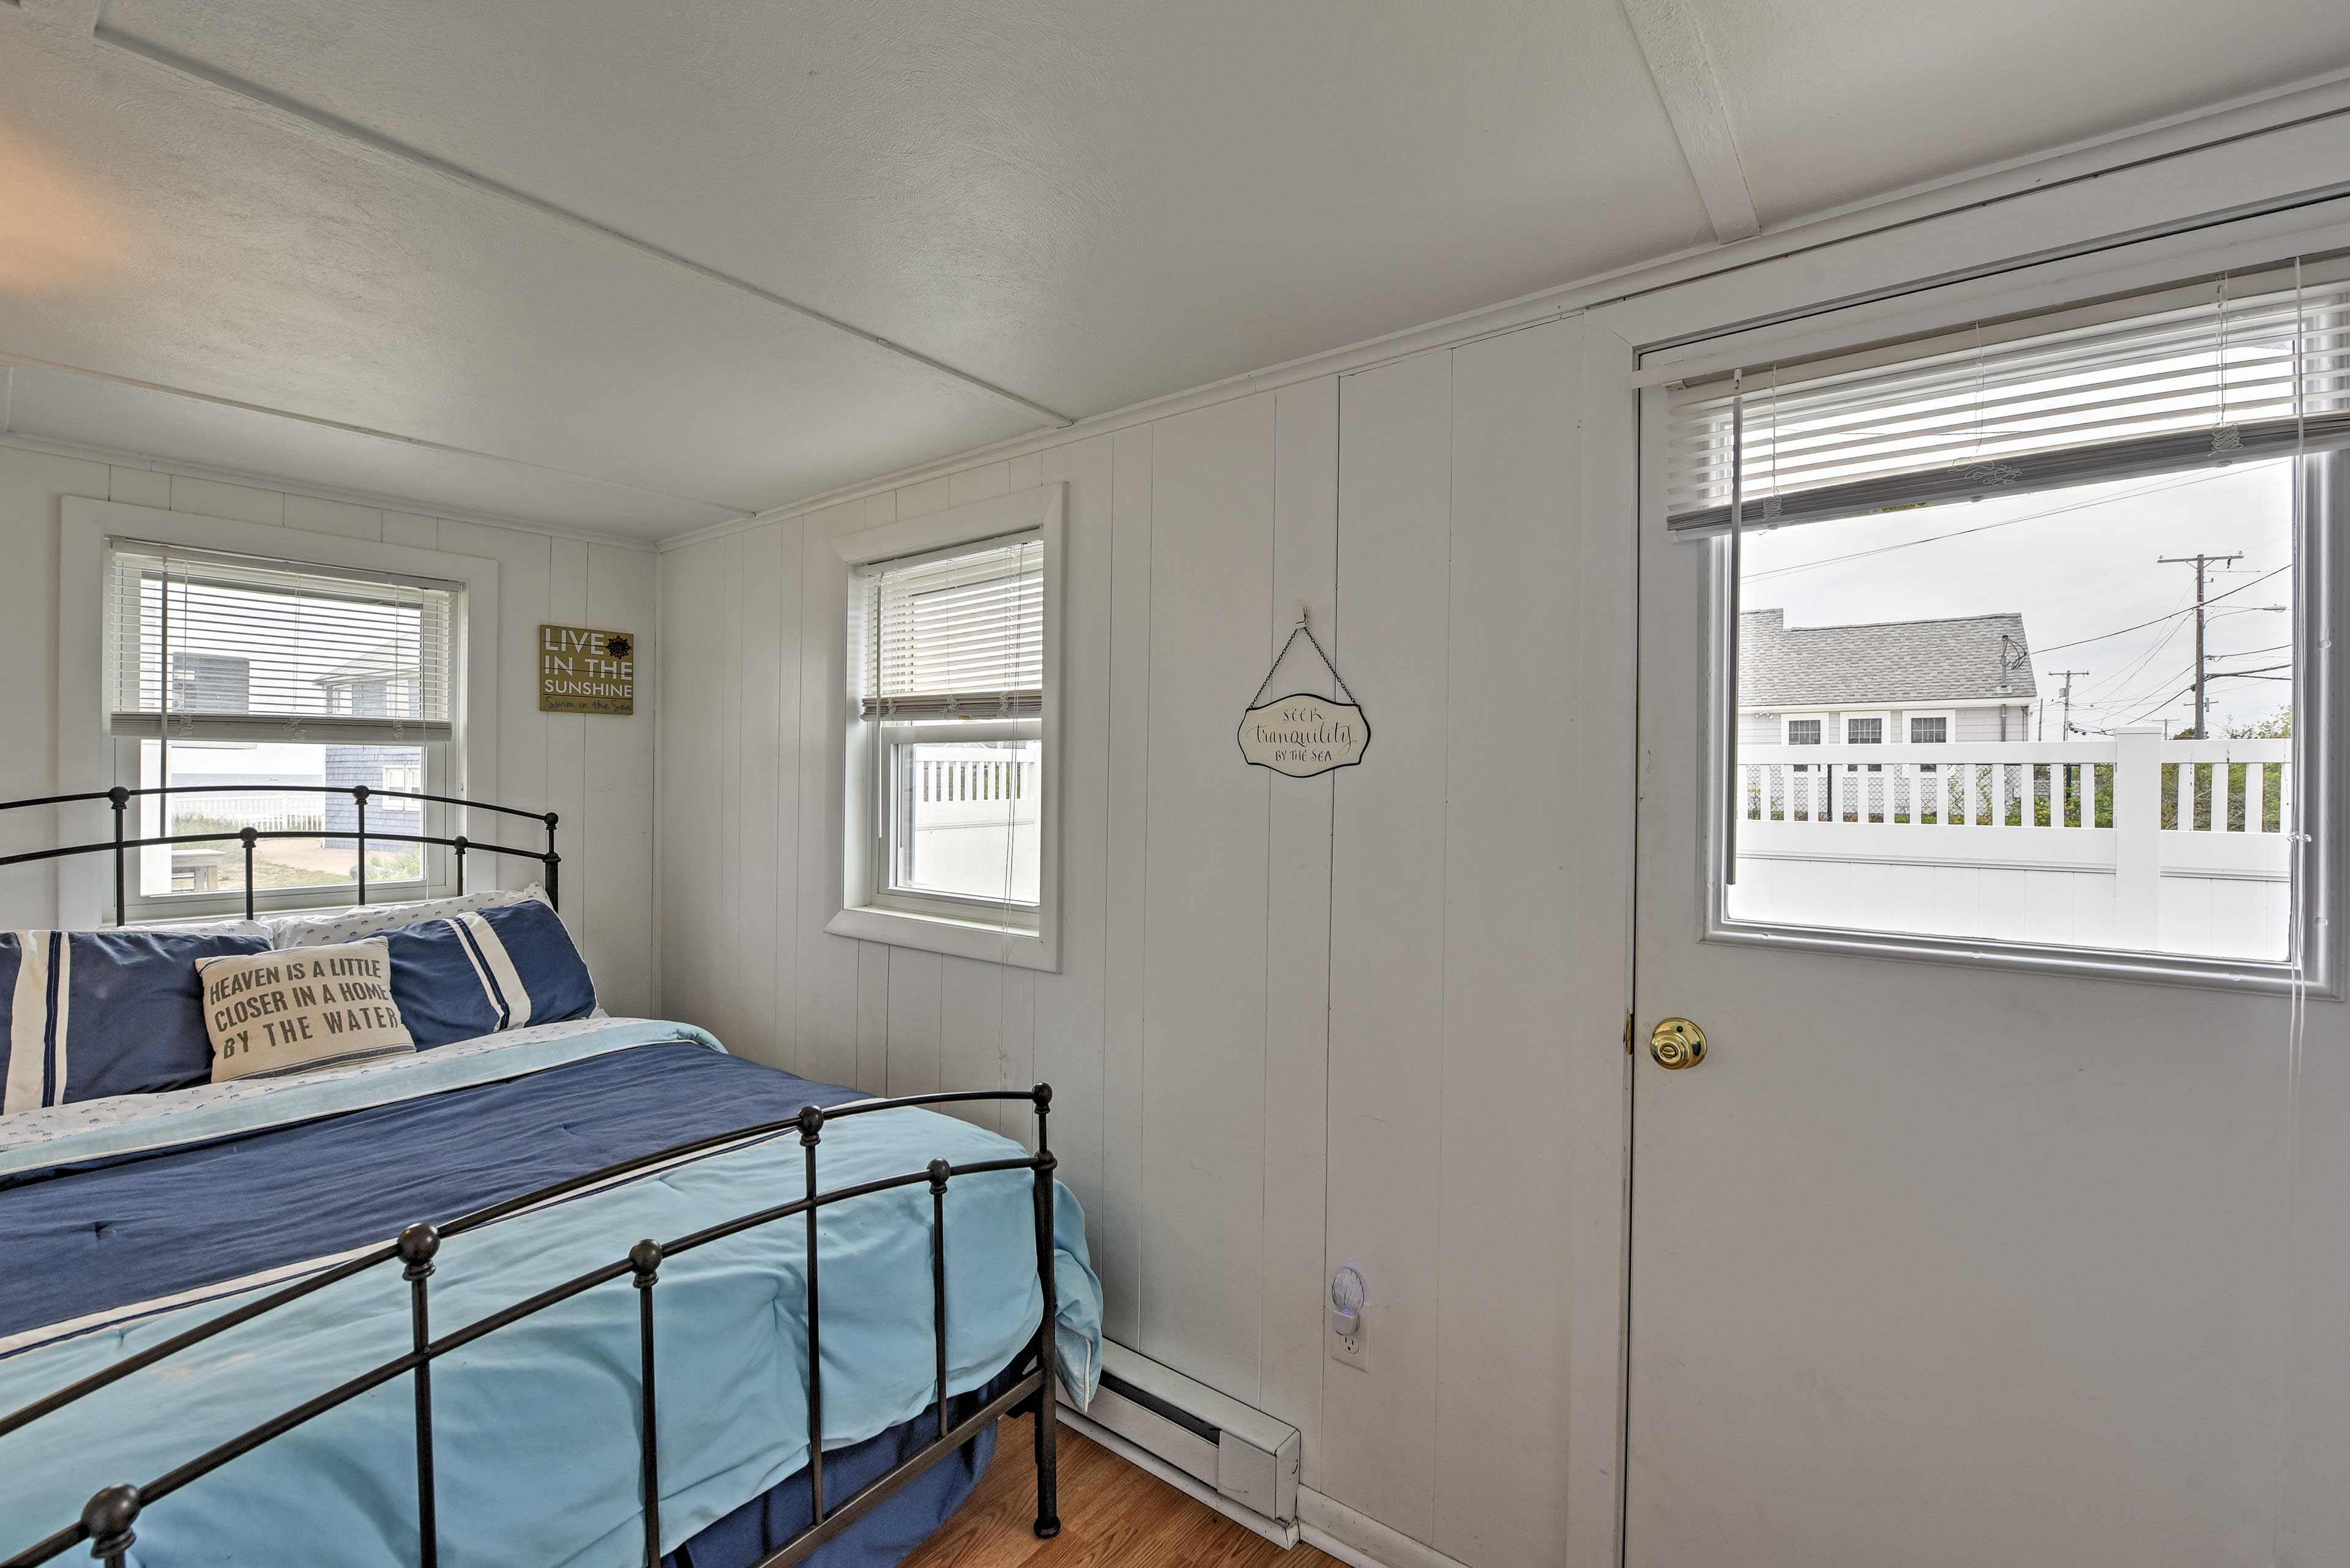 This bedroom provides direct access to the private yard.